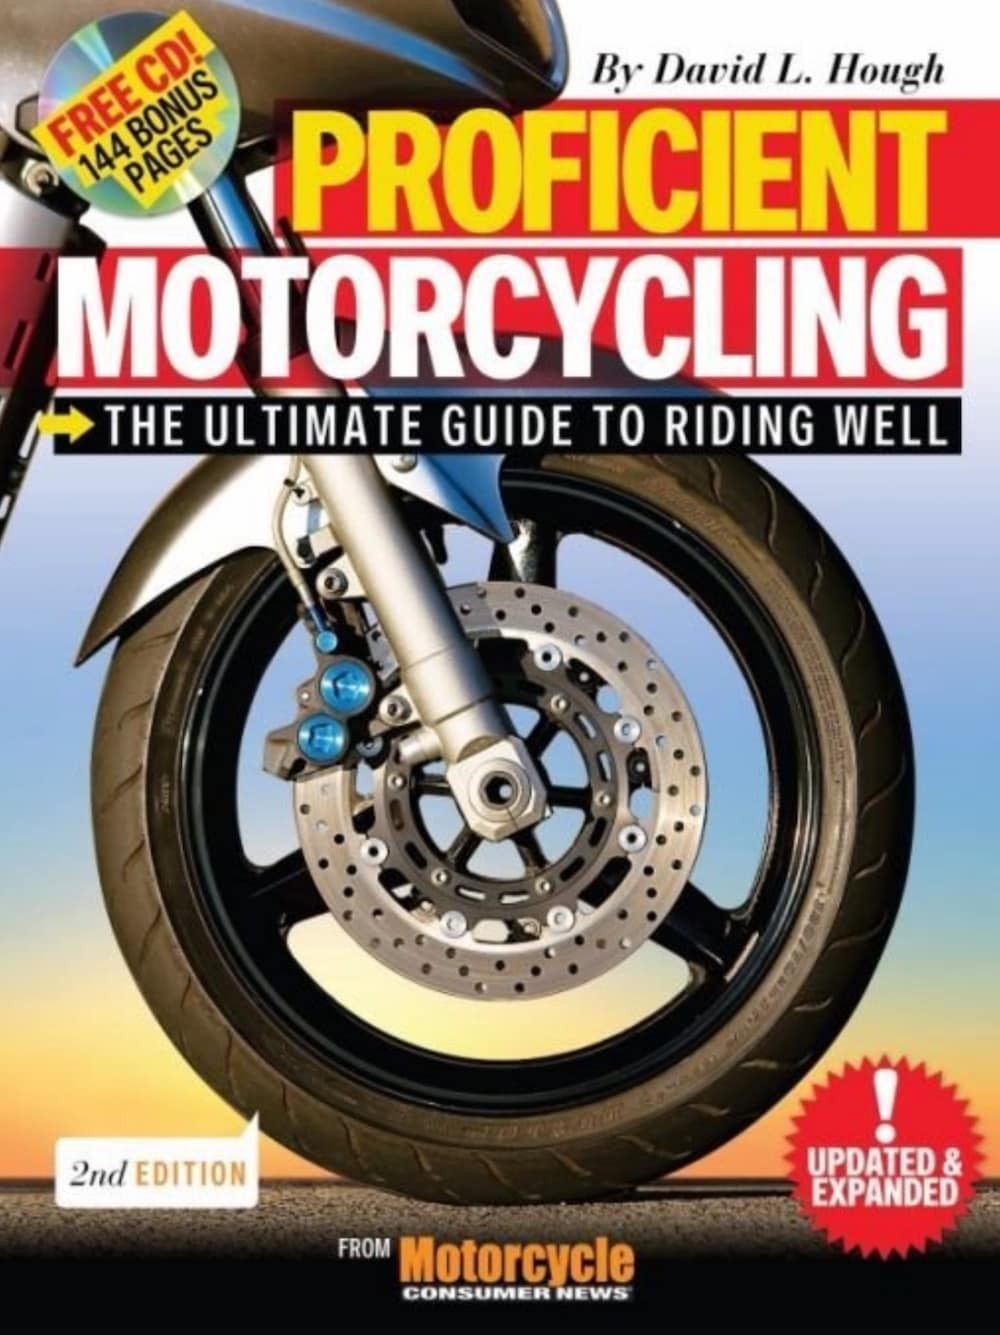 Proficient Motorcling Cover - One of the best books to introduce motorcycling, for street riding